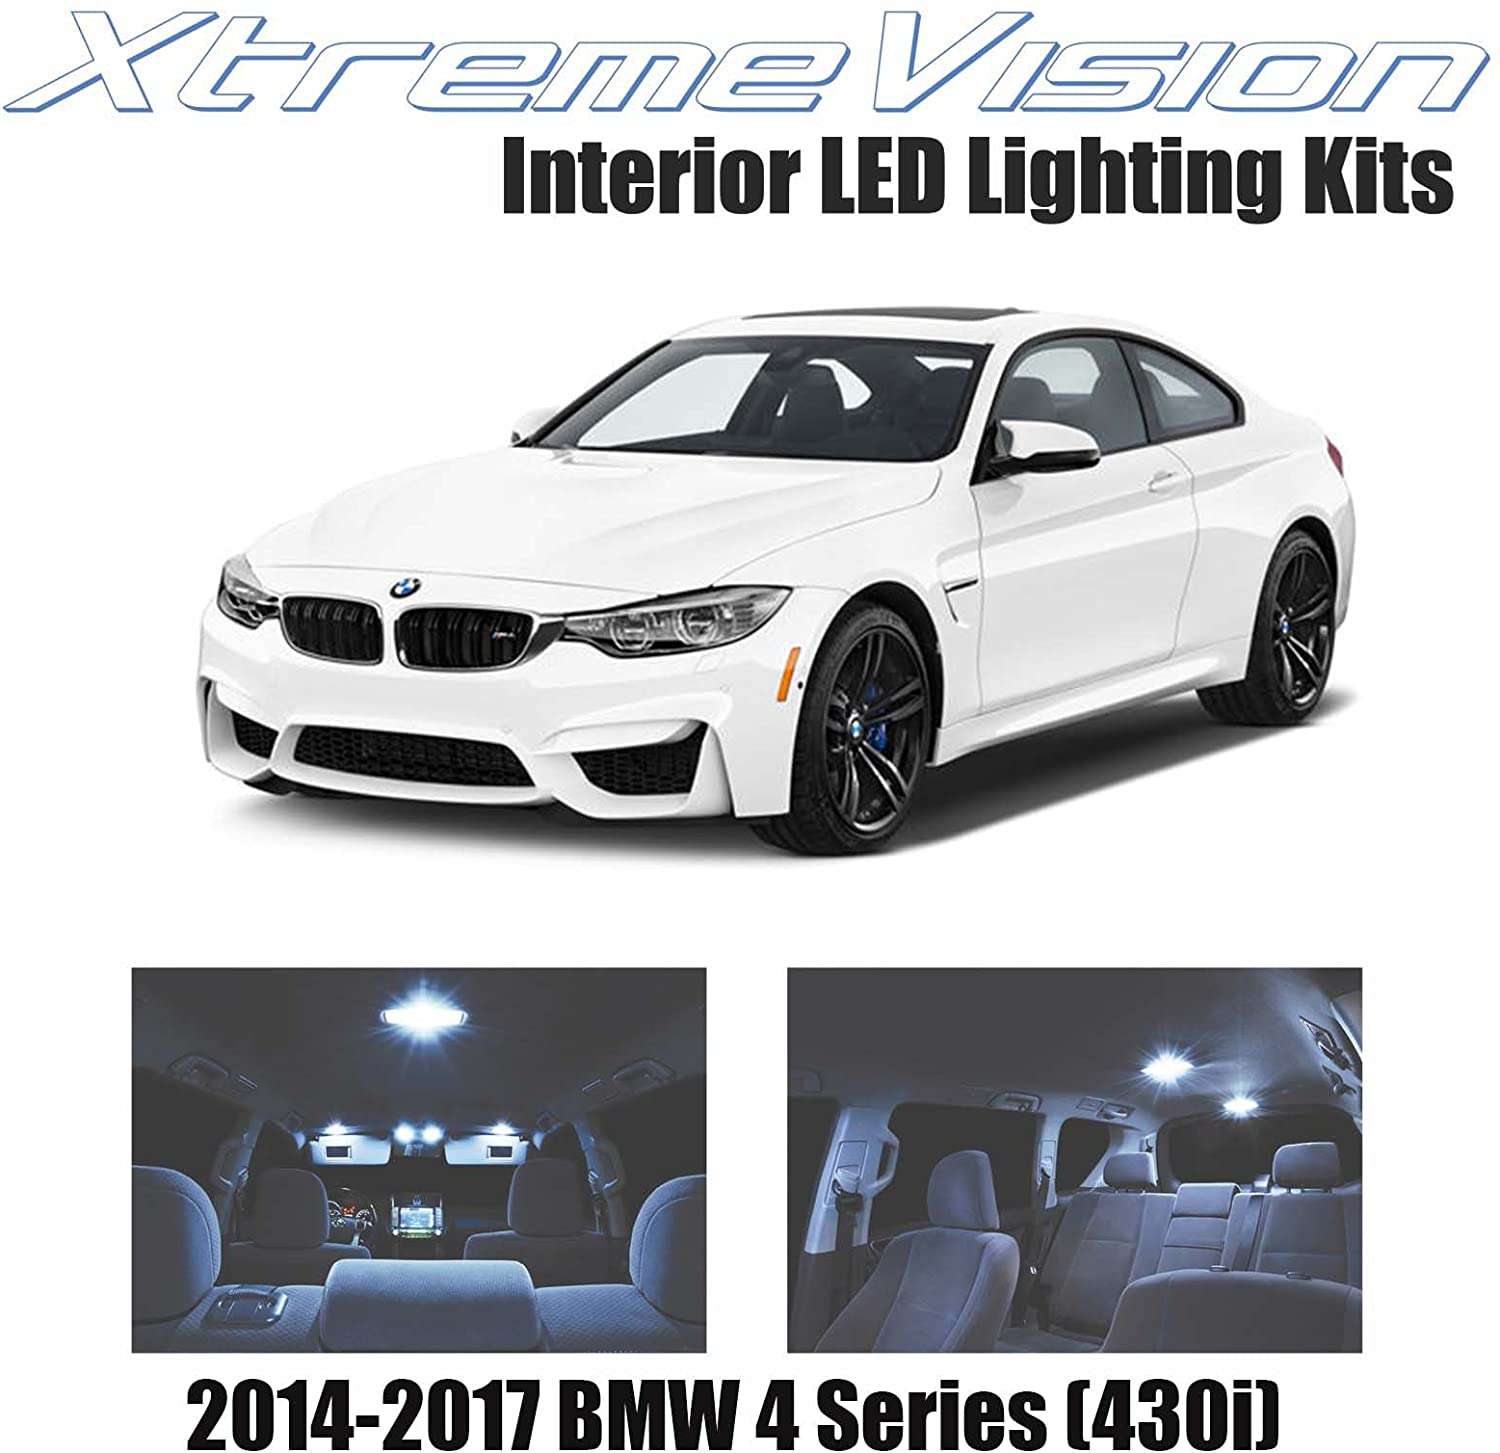 XtremeVision LED for BMW 4 Series (430i) 2014-2017 (12 Pieces) Cool White Premium Interior LED Kit Package + Installation Tool